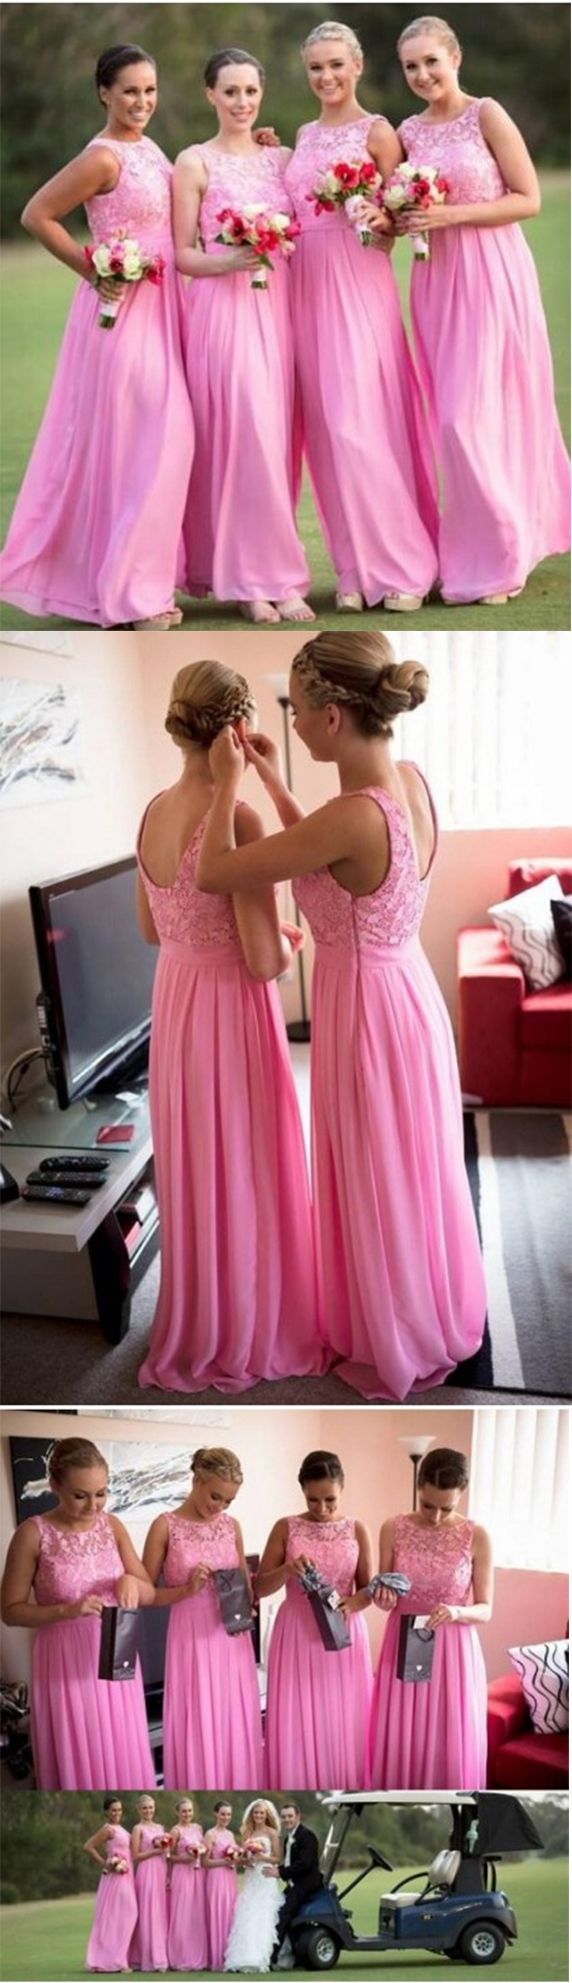 21 best Bridesmaid Dresses images on Pinterest | Evening gowns ...